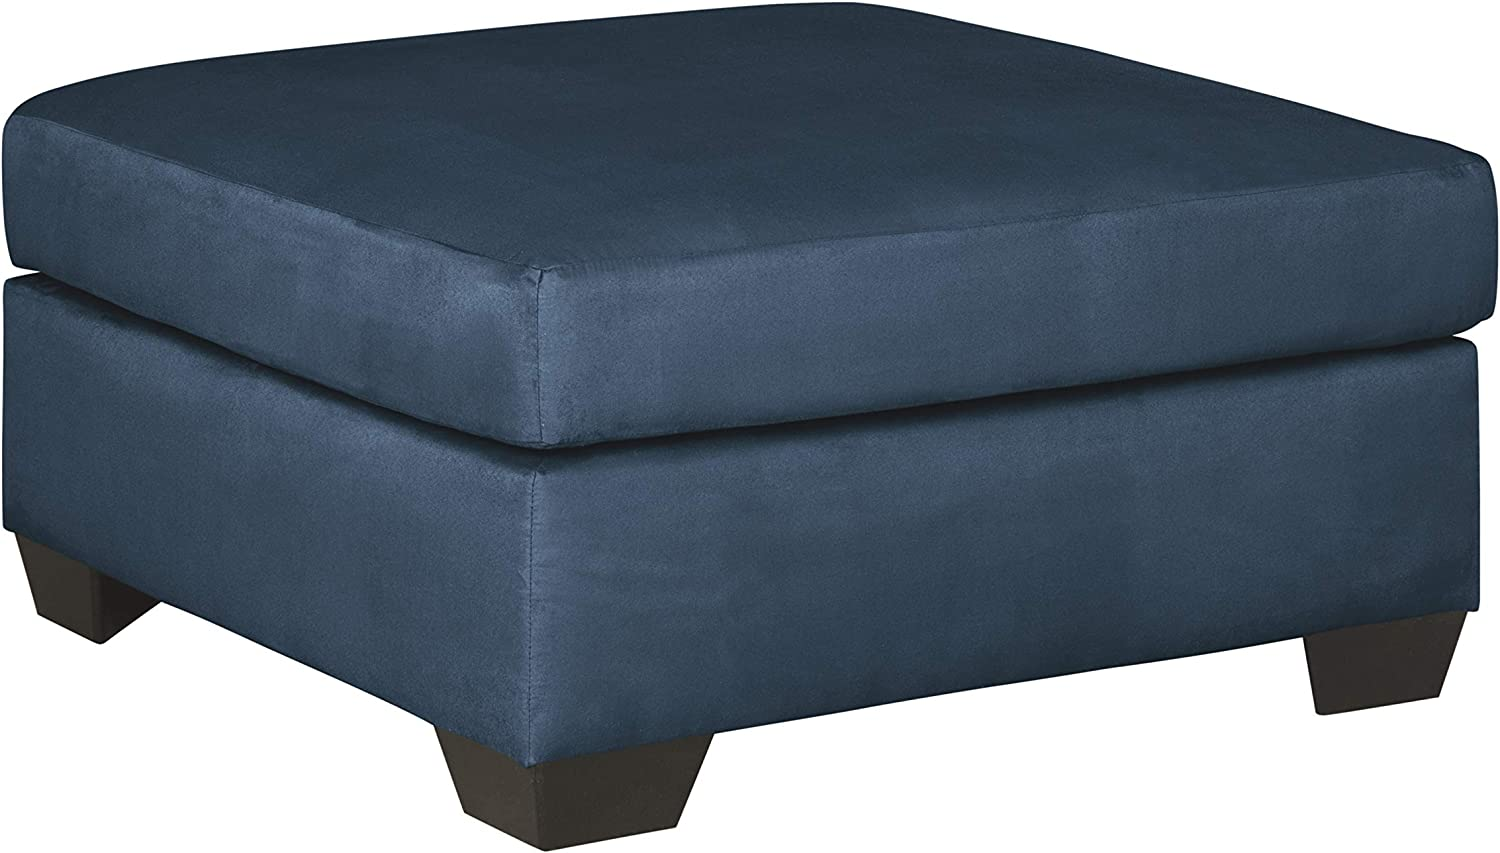 Signature Design by Ashley - Darcy Contemporary Oversized Accent Ottoman, Blue